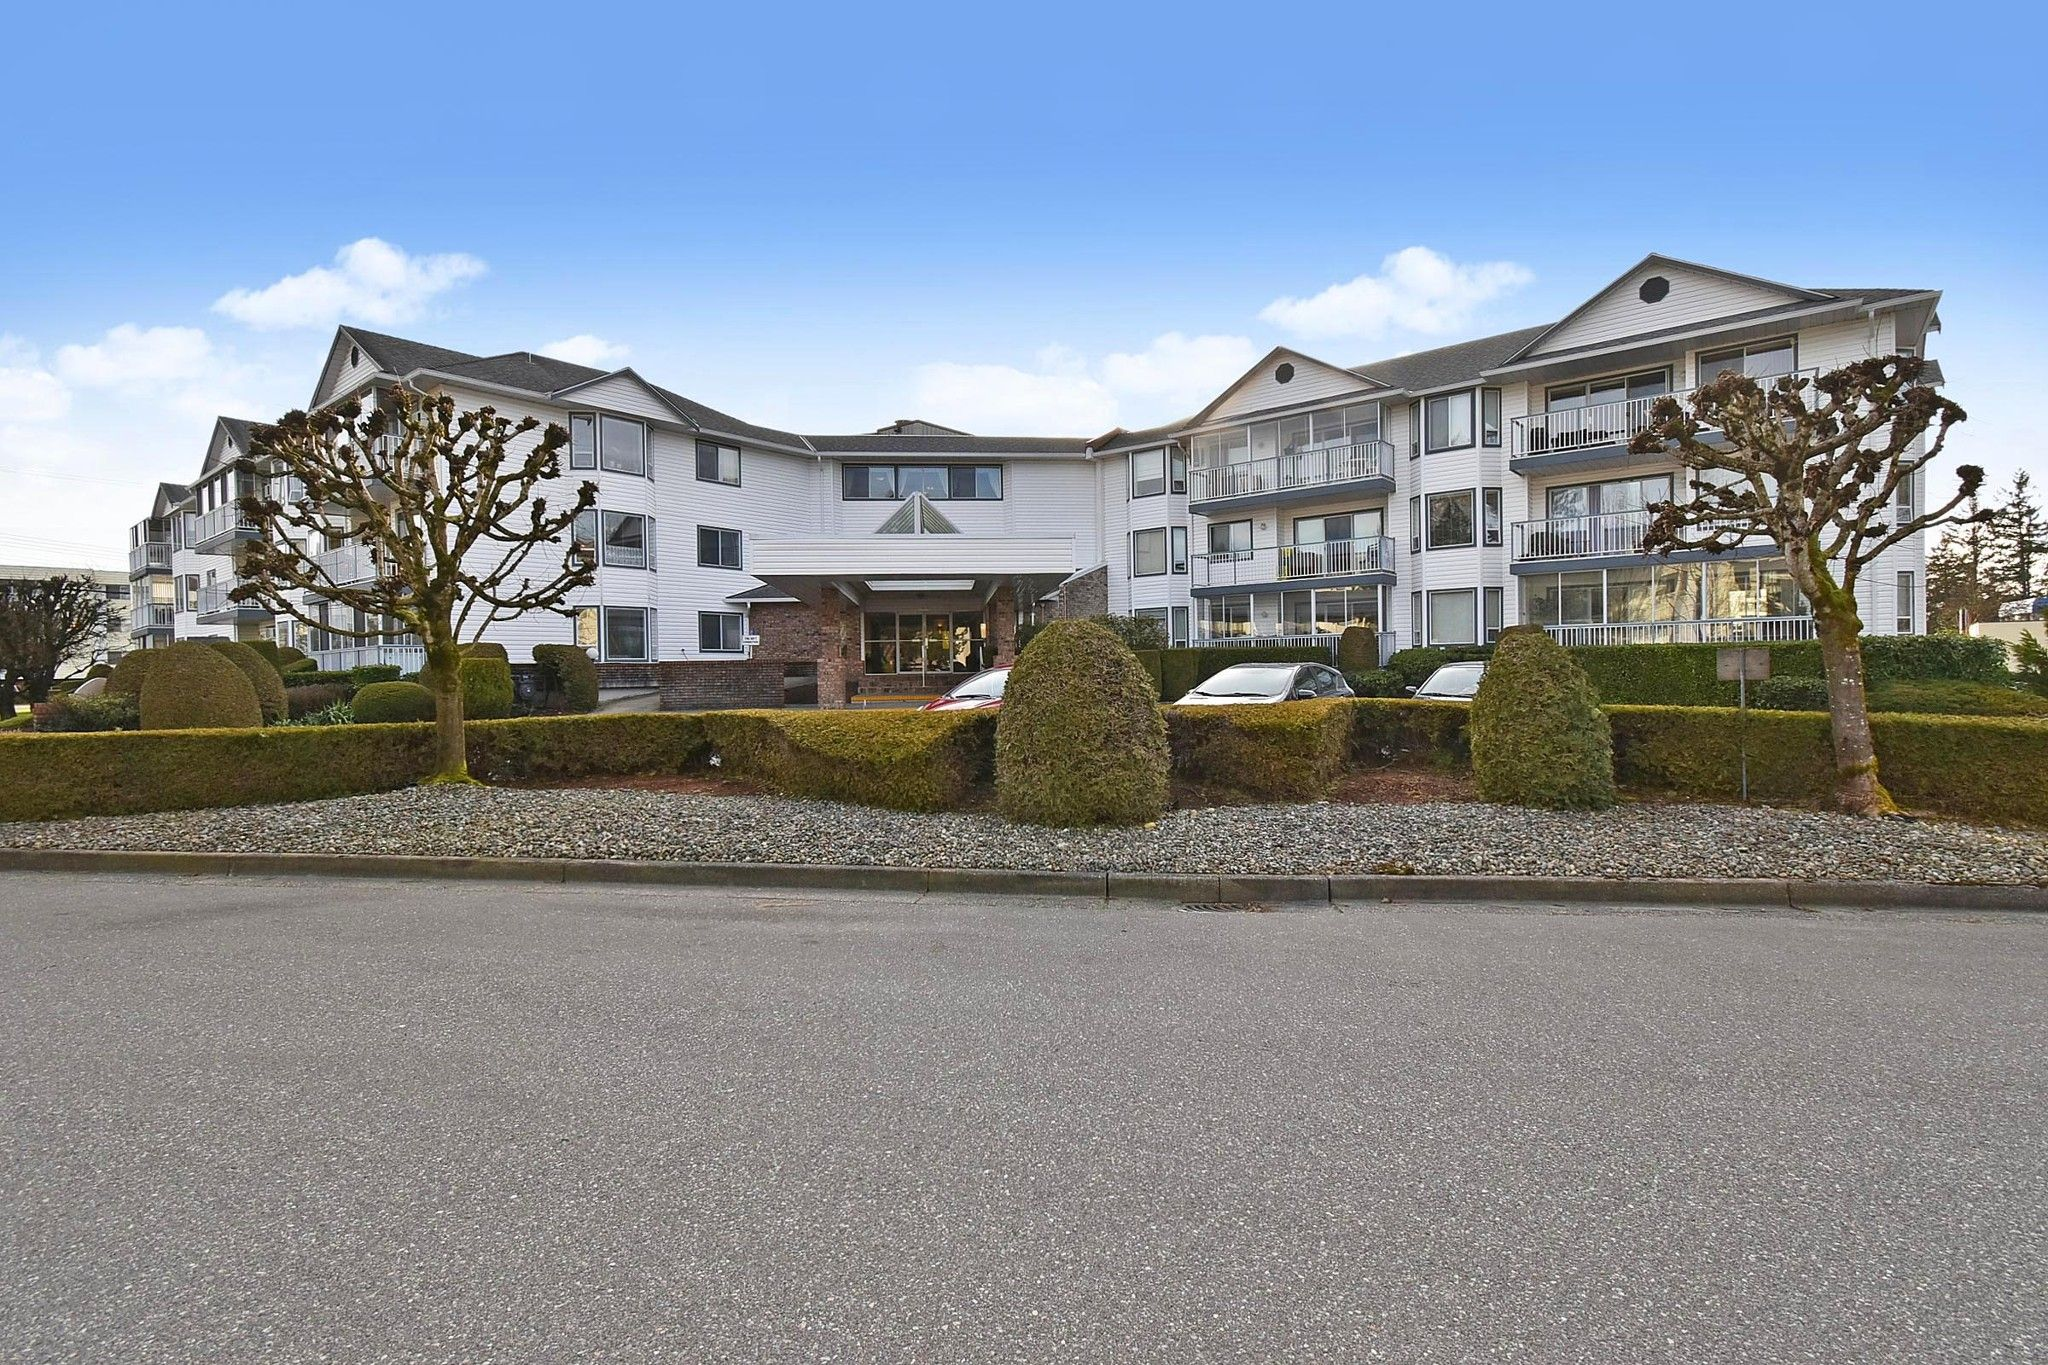 Main Photo: 306 2425 Church Street in Abbotsford: Abbotsford West Condo for sale : MLS®# R2544905